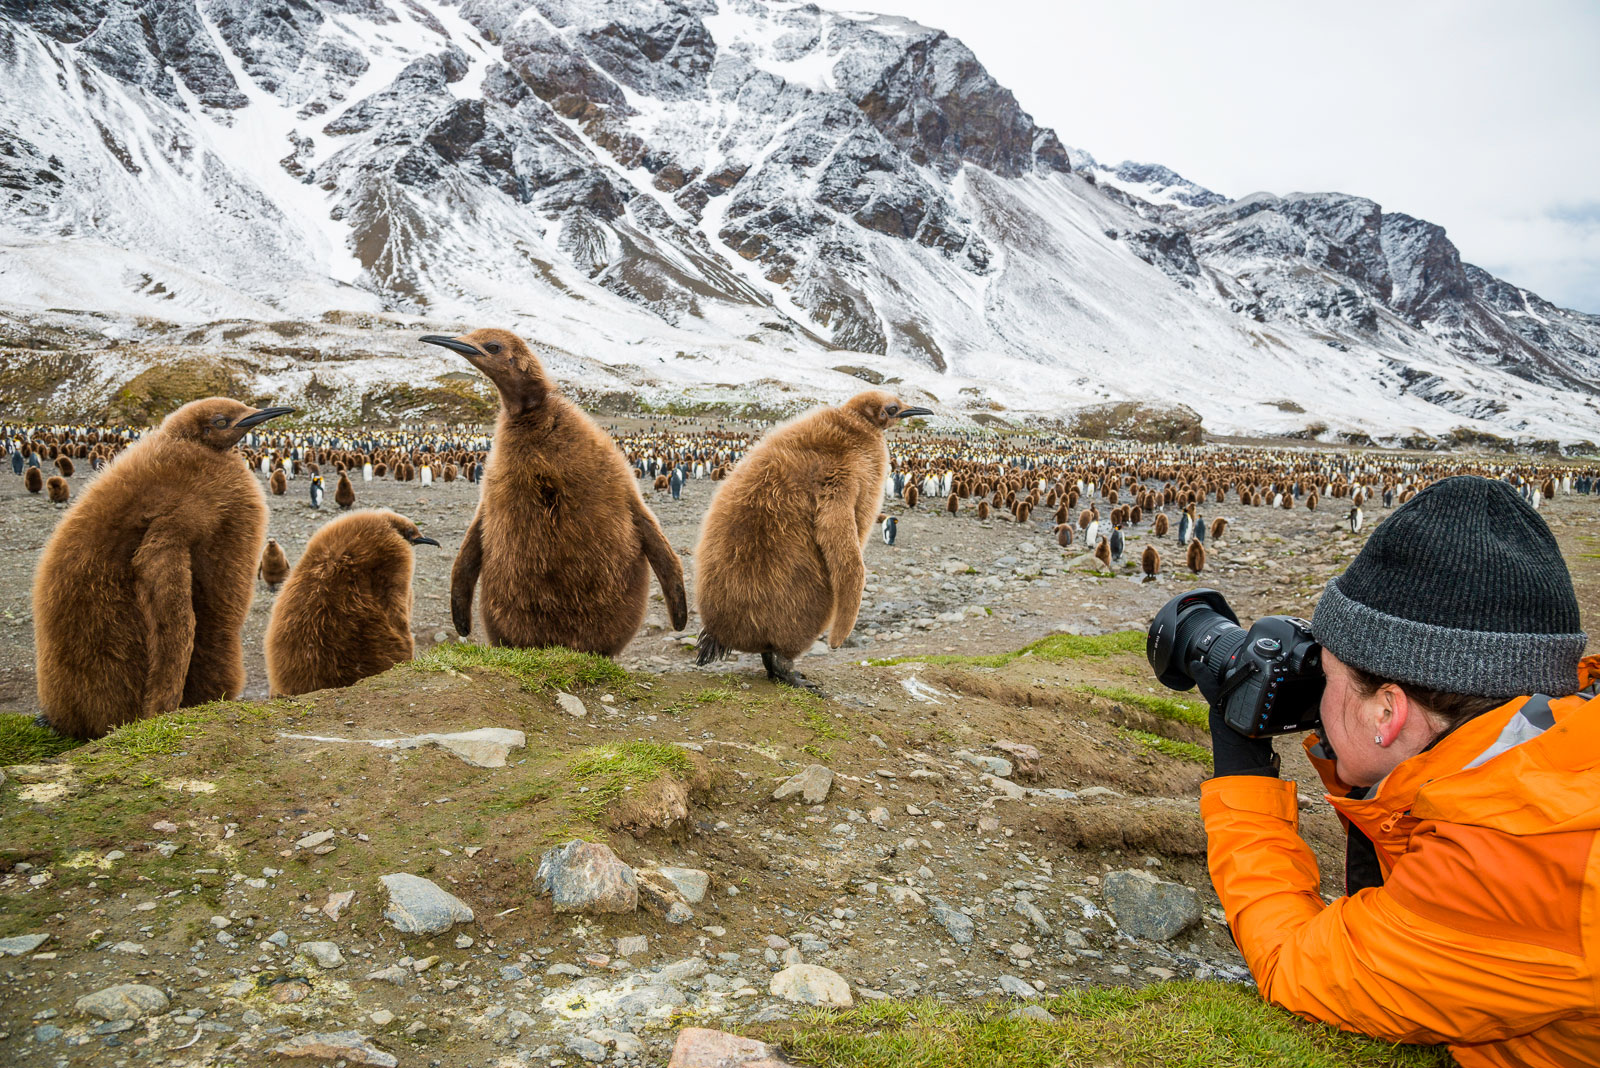 Tourist photographing King Penguin chicks, Fortuna Bay, South Georgia Island, Antarctica